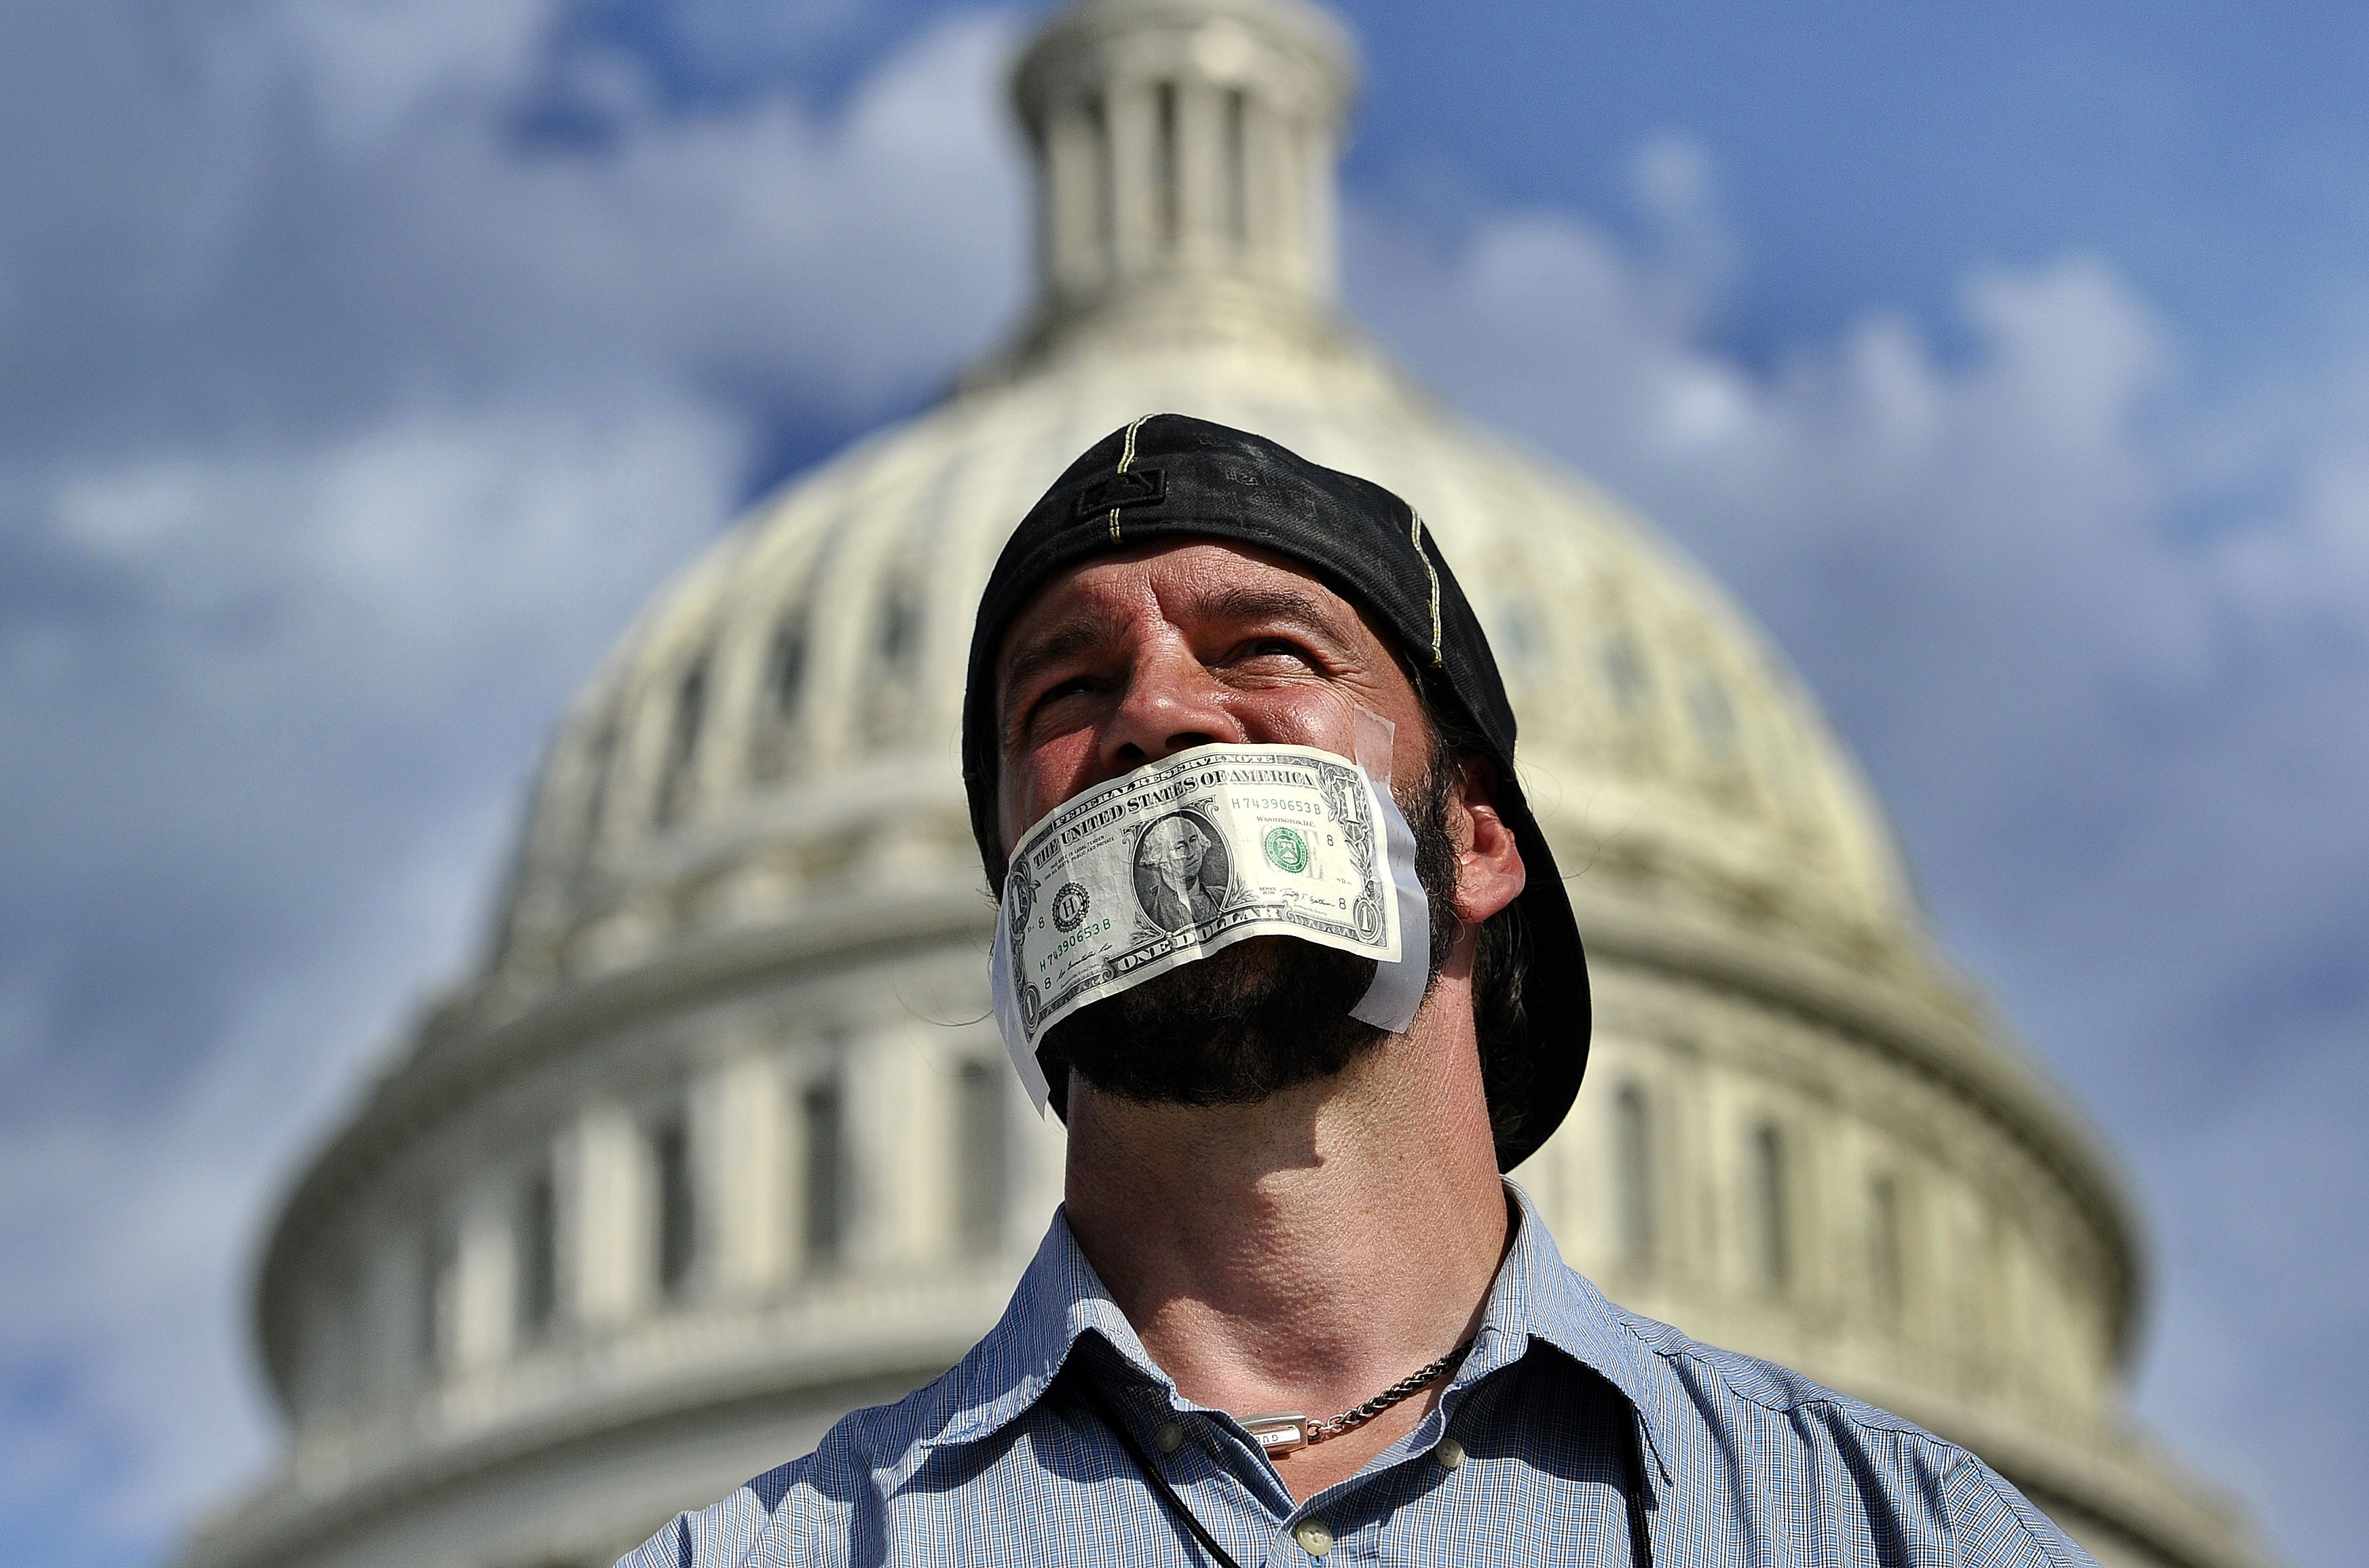 Protester covers his mouth with a dollar bill as he joins others in a demonstration in front of the US Capitol in Washington, DC, on Tuesday urging congress to pass the budget  (AFP Photo / Jewel Samad)